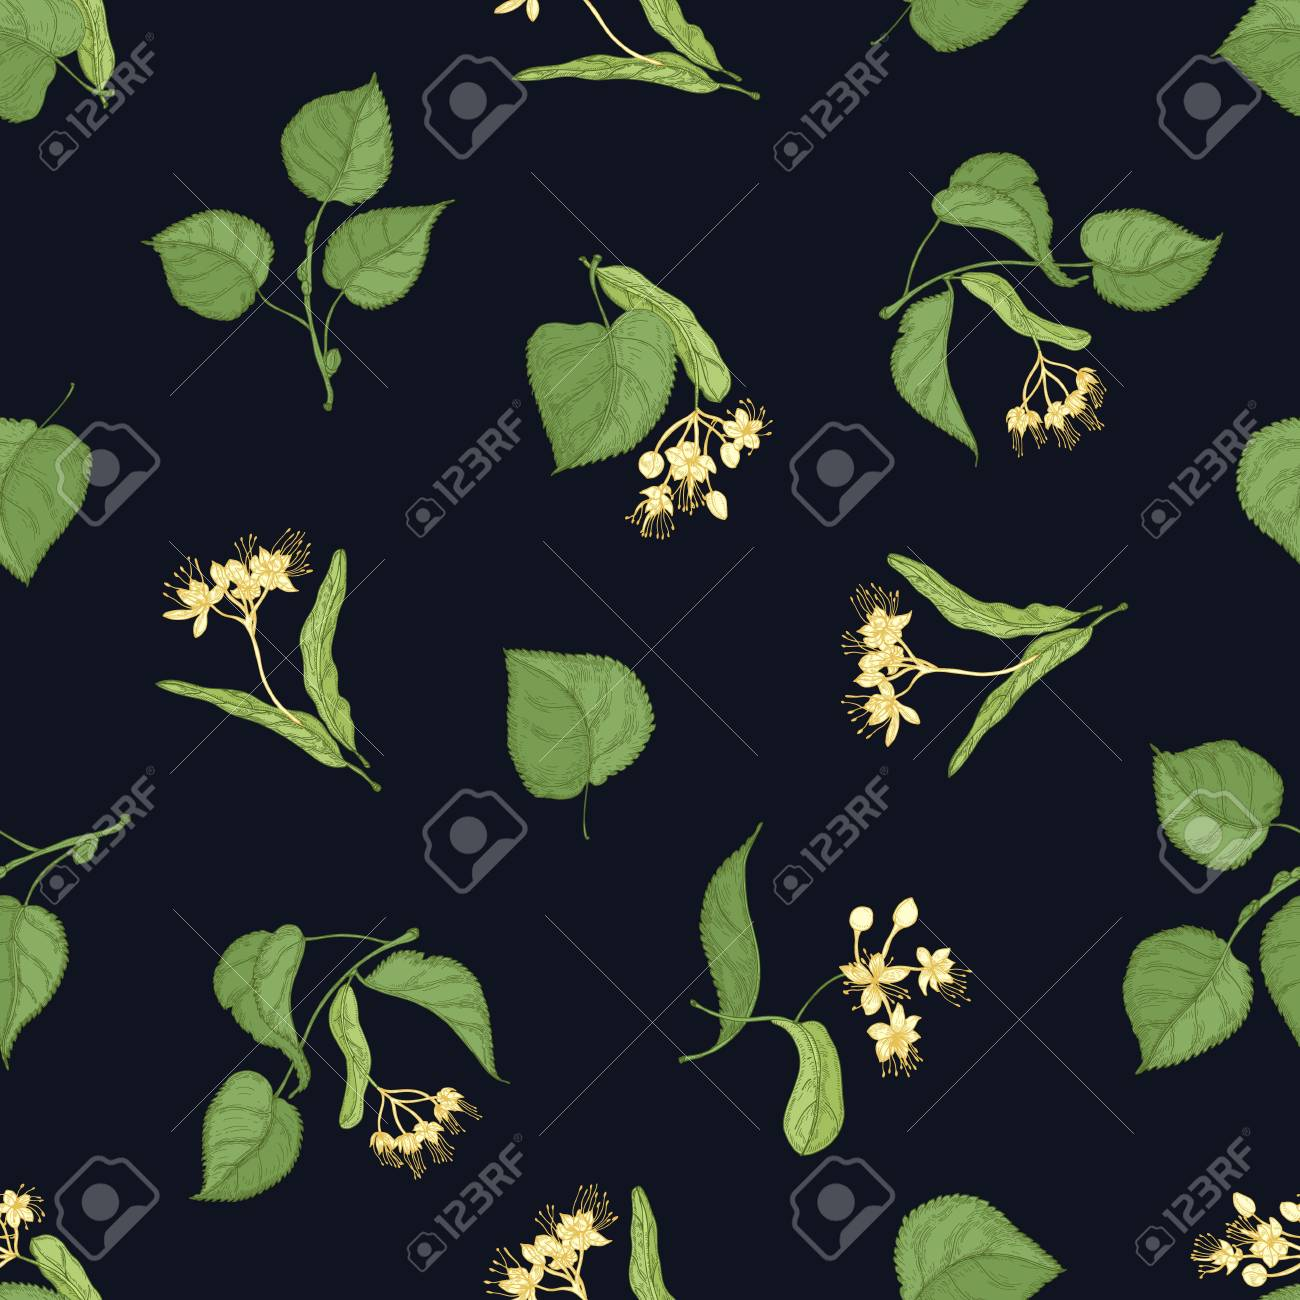 Floral seamless pattern with linden leaves and inflorescences on black background. Backdrop with medicinal plant. Colored hand drawn vector illustration in vintage style for textile print, wallpaper - 117295998